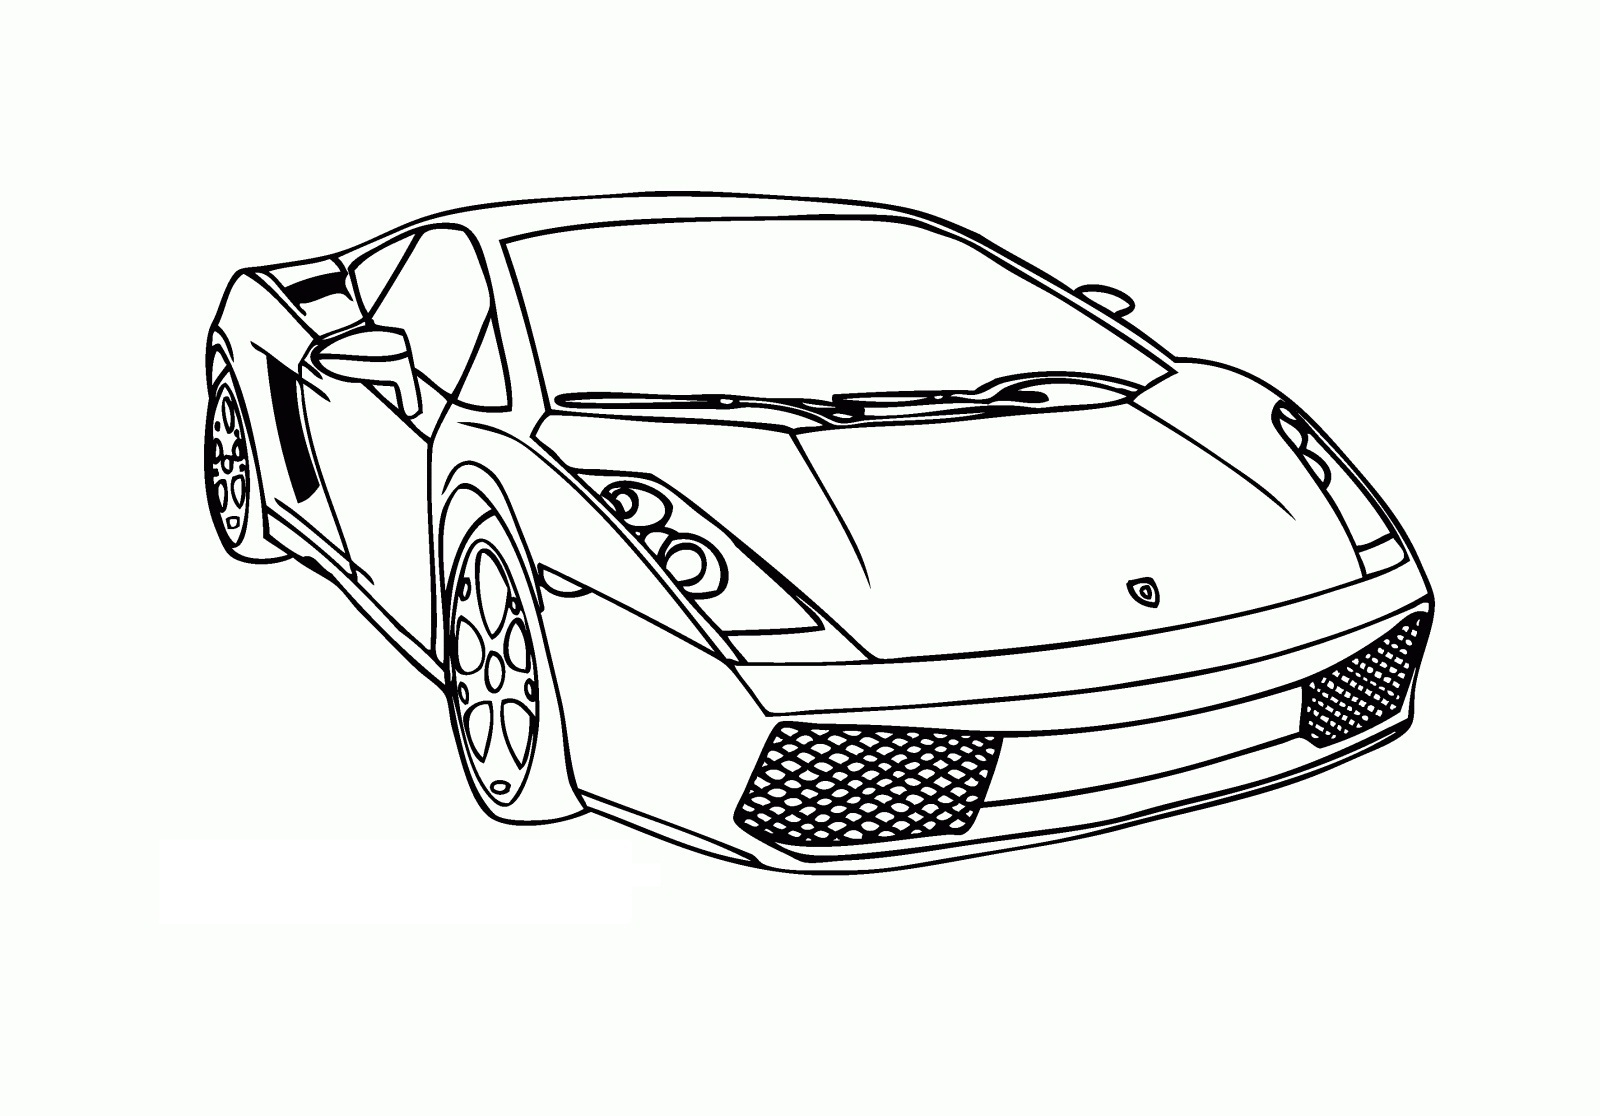 remote control construction for adults with Lamborghini Coloring Pages on Watch furthermore Top Best Remote Control Car For Kids Reviews besides Cat Rc Excavator additionally Vex Iq Robotics Construction Kit besides Chevy Power Wheels Parental Remote Control Ride On Truck.